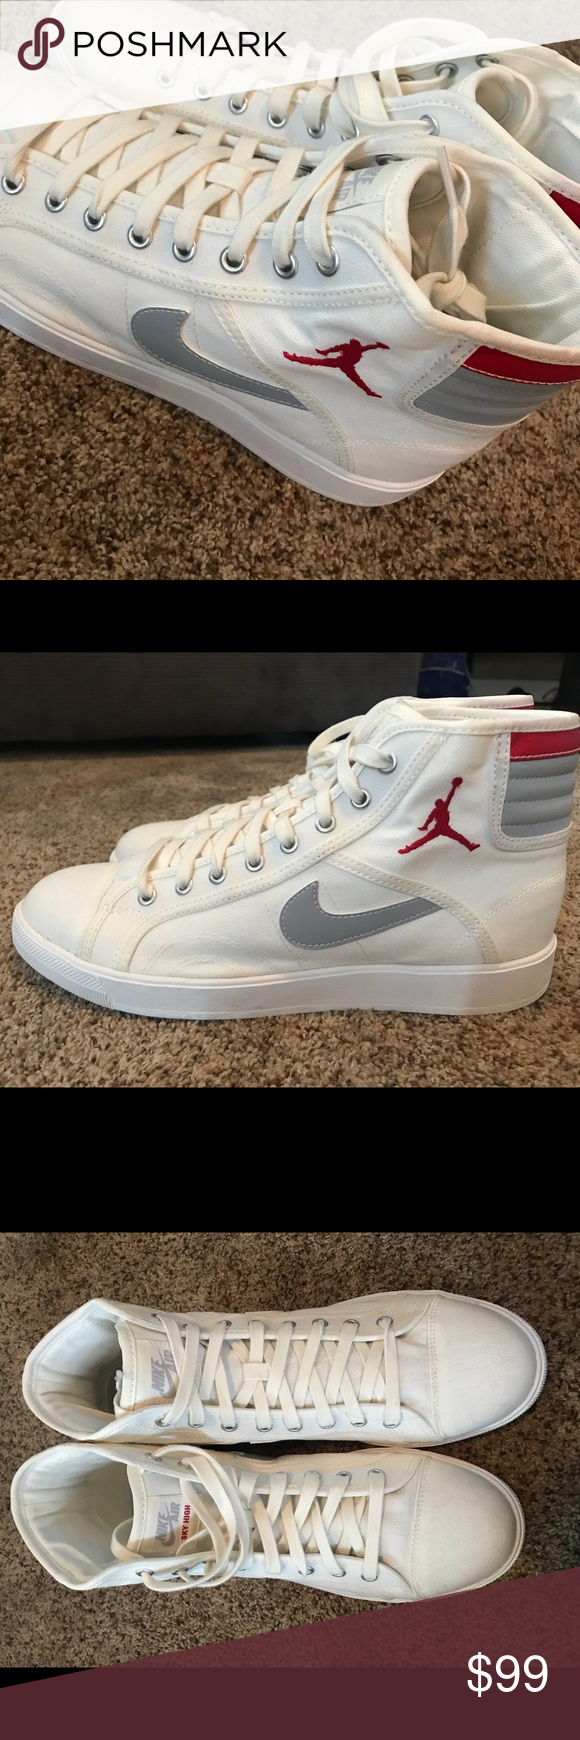 77a54abd15bc Nike Air Jordan Sky High OG Size 11 Air Jordan Skyhigh OG 819953 102  Manufacturer Sku 819953 102 Colorway SAIL GM RED-WOLF GREY New without Tags  Never worn ...